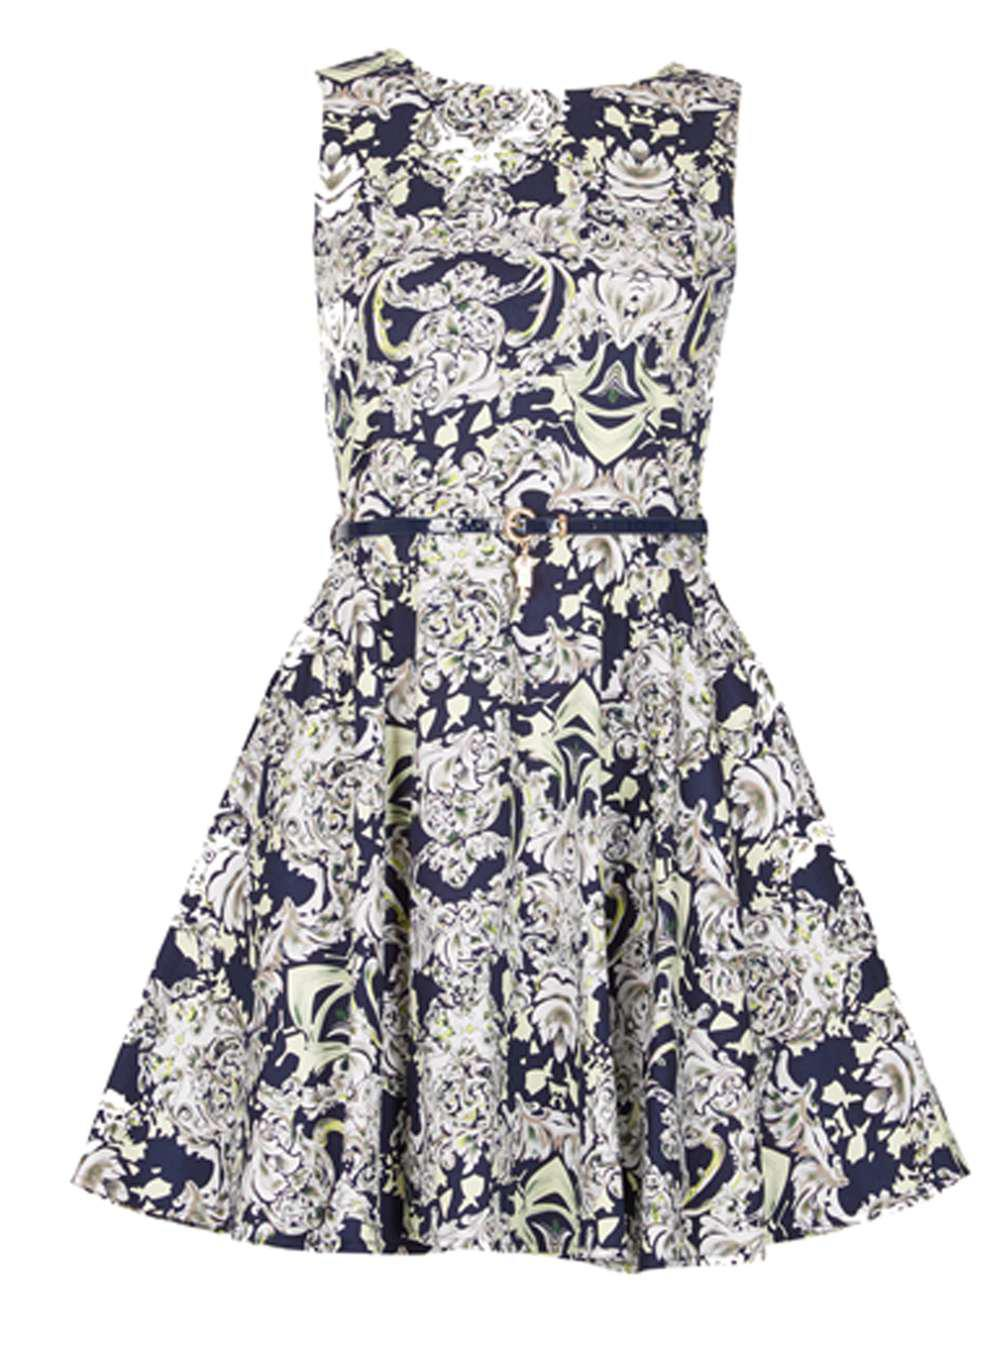 Clearance Very Cheap Cheap Online Store Dorothy Perkins Womens *Izabel London High Neck Skater Dress- Free Shipping View n5M4m9iZ